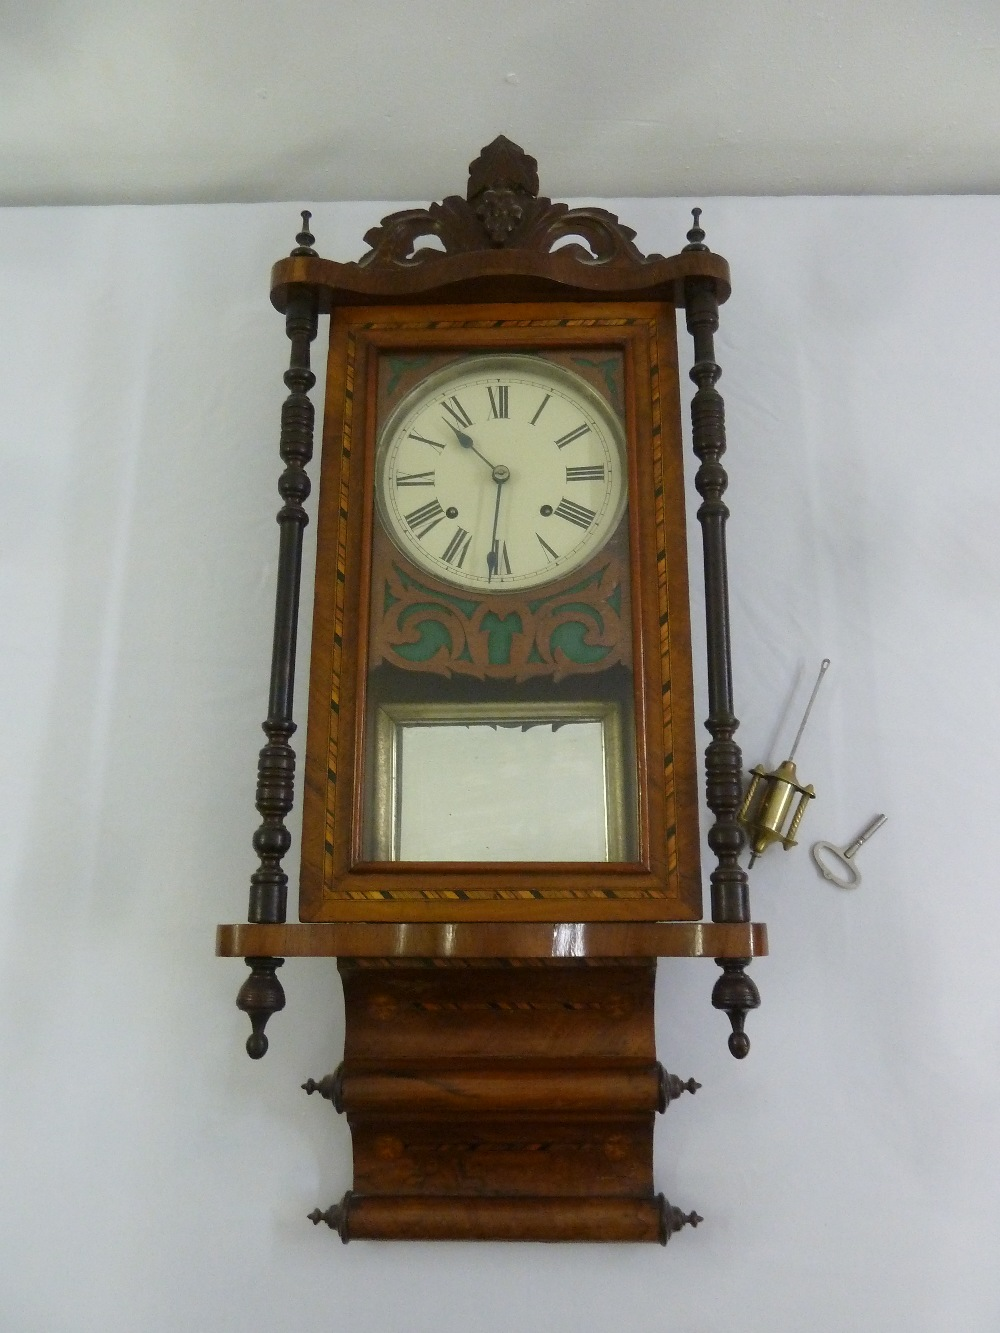 Lot 399 - A mahogany inlaid wall regulator to include key and pendulum